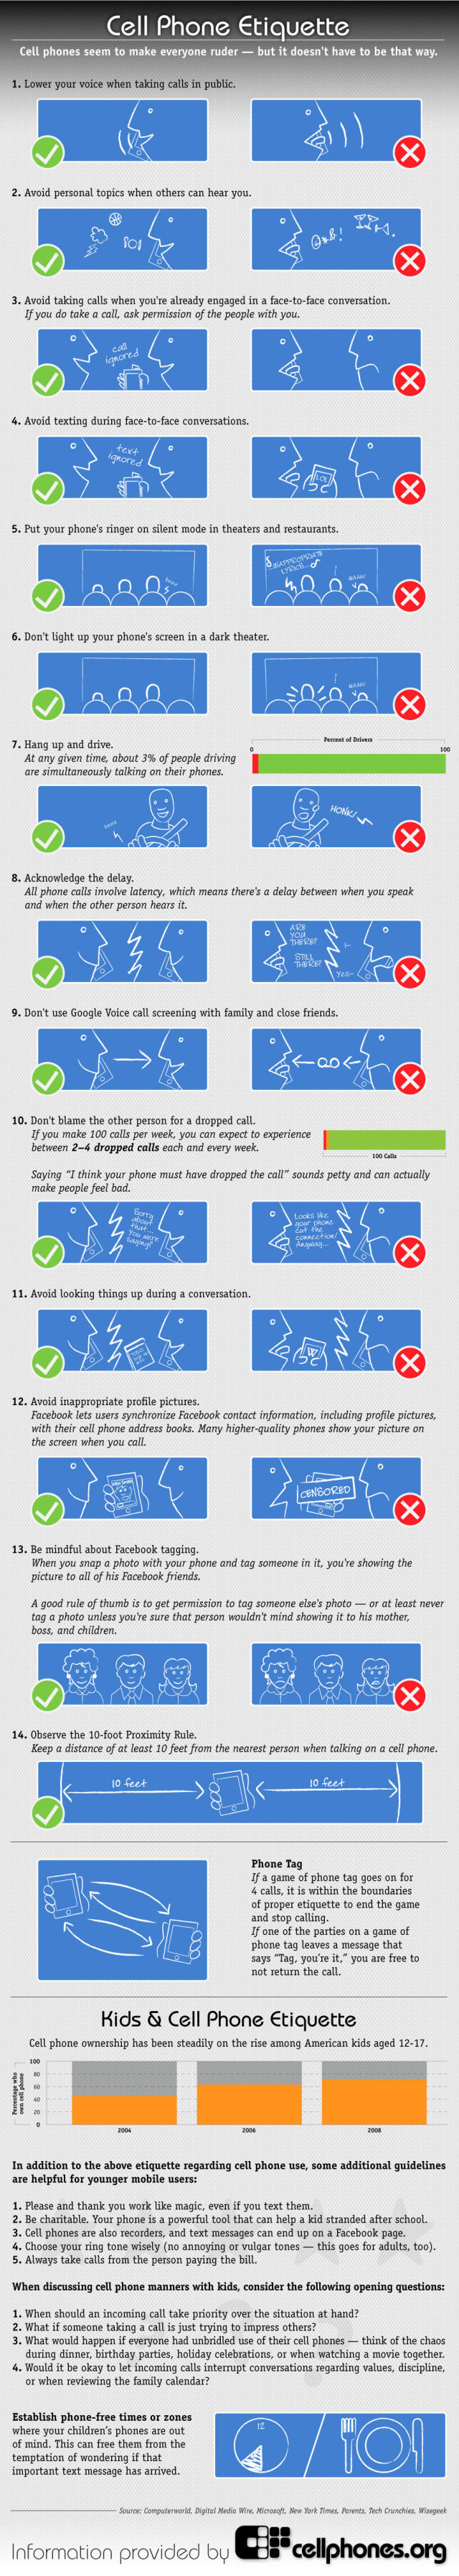 How You Should Talk On the Cell Phone (1 pic)